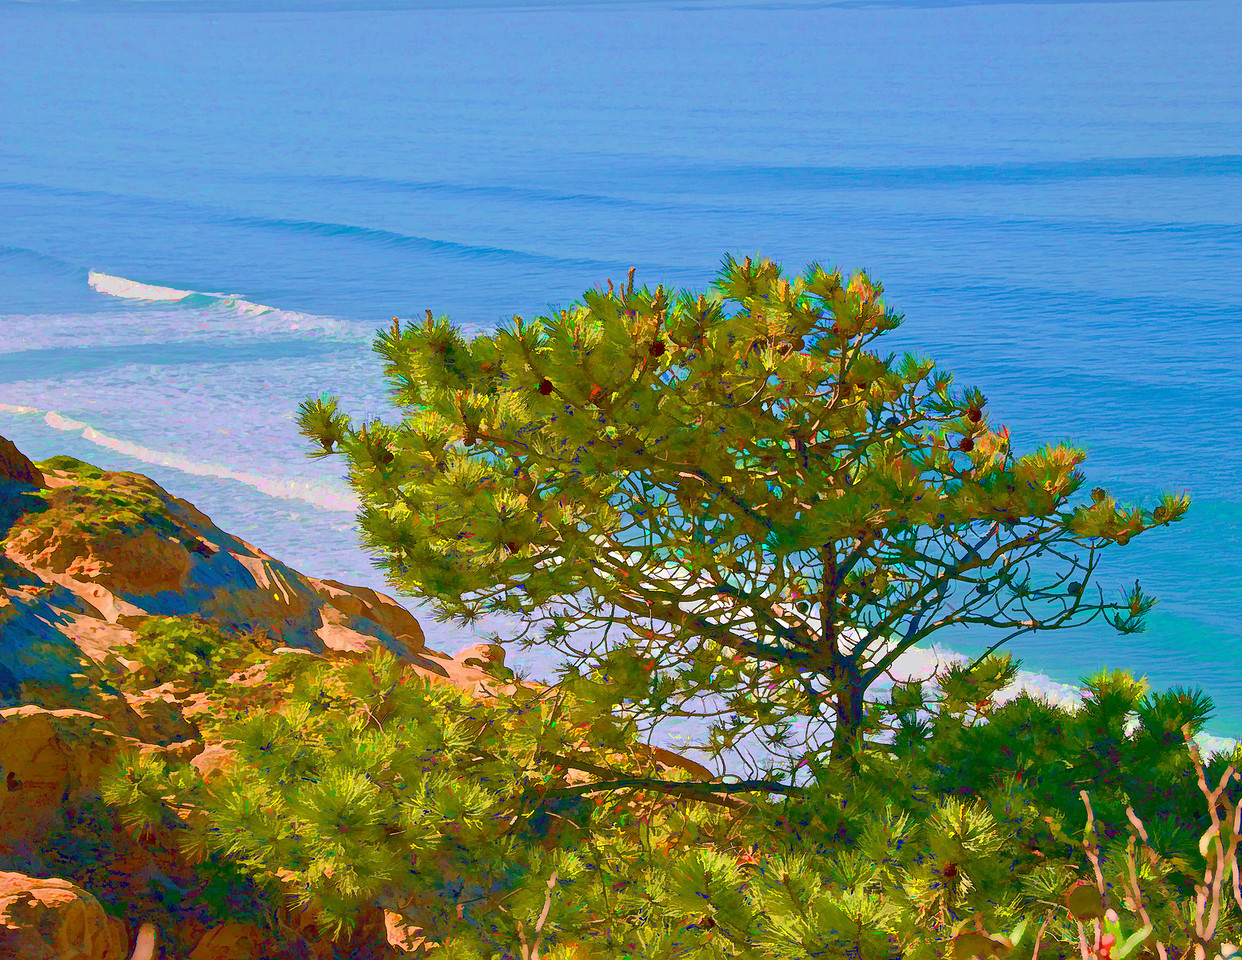 154  Torrey Pine and Cliffs painted